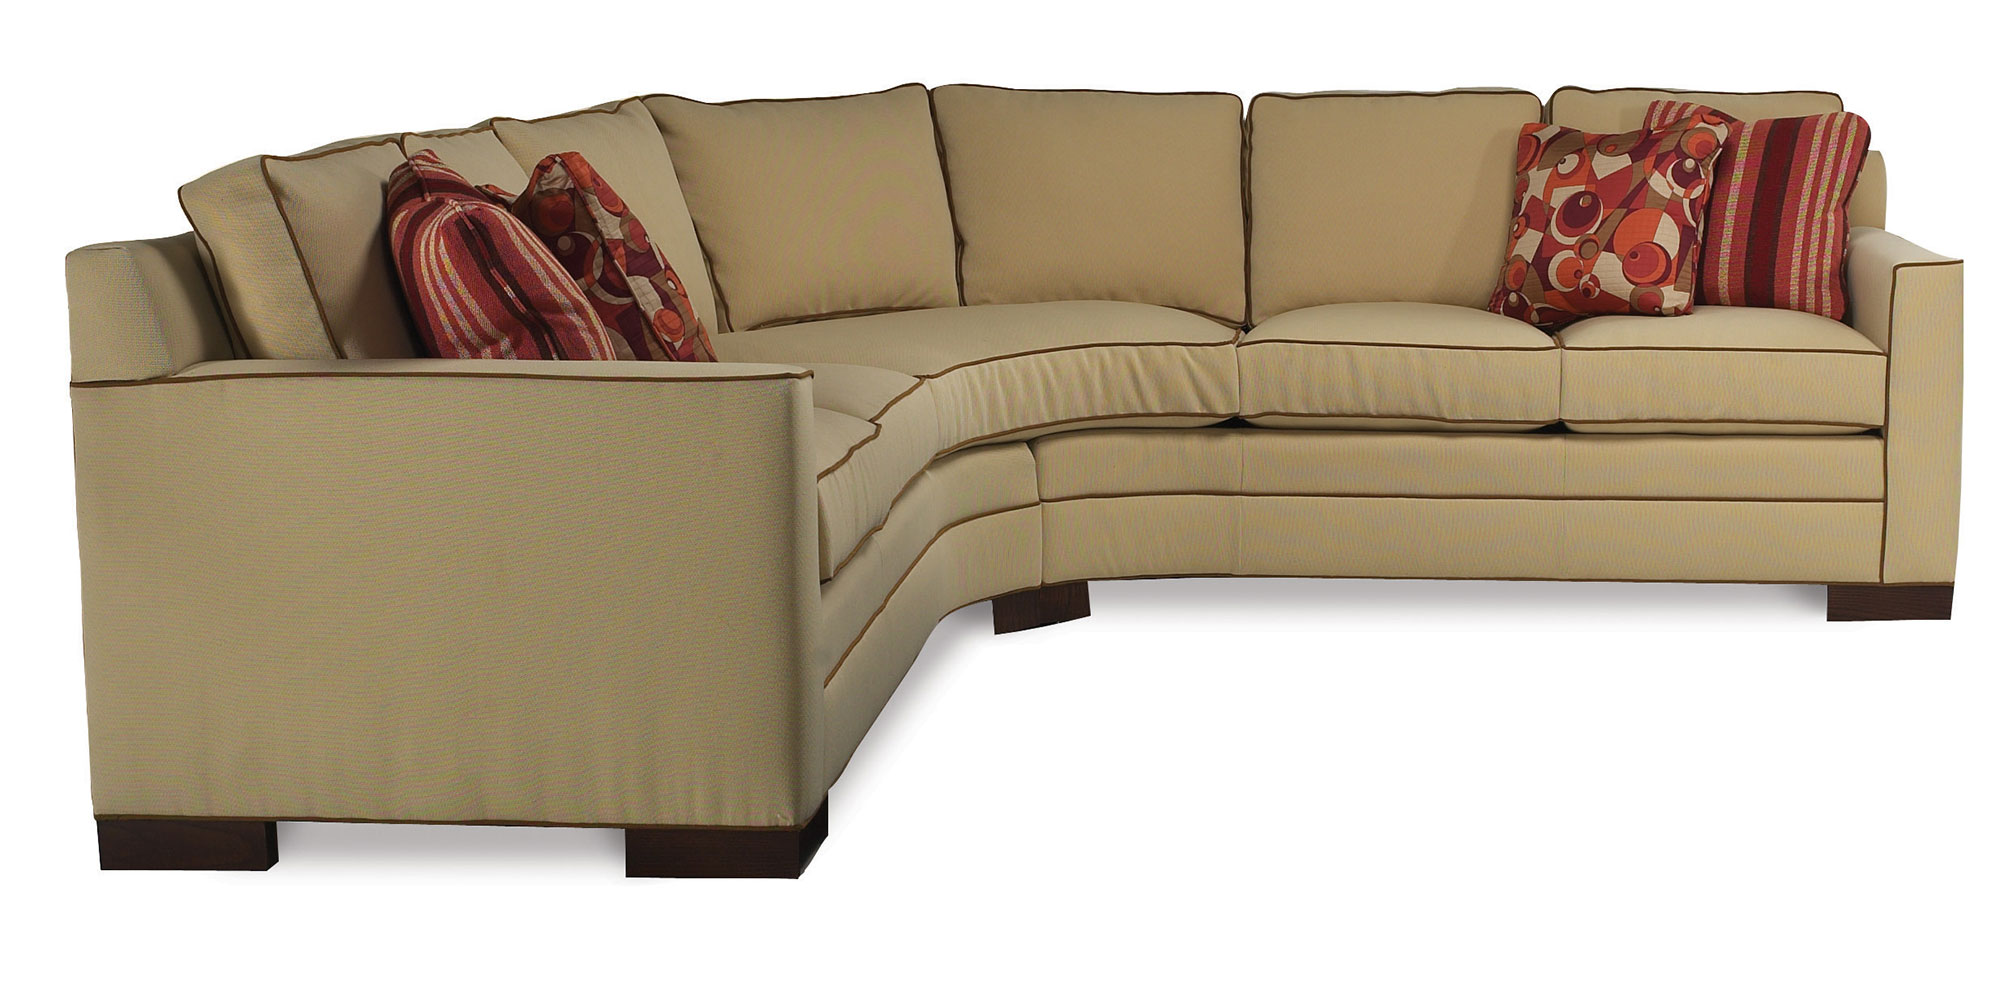 Vanguard Sectional 213154